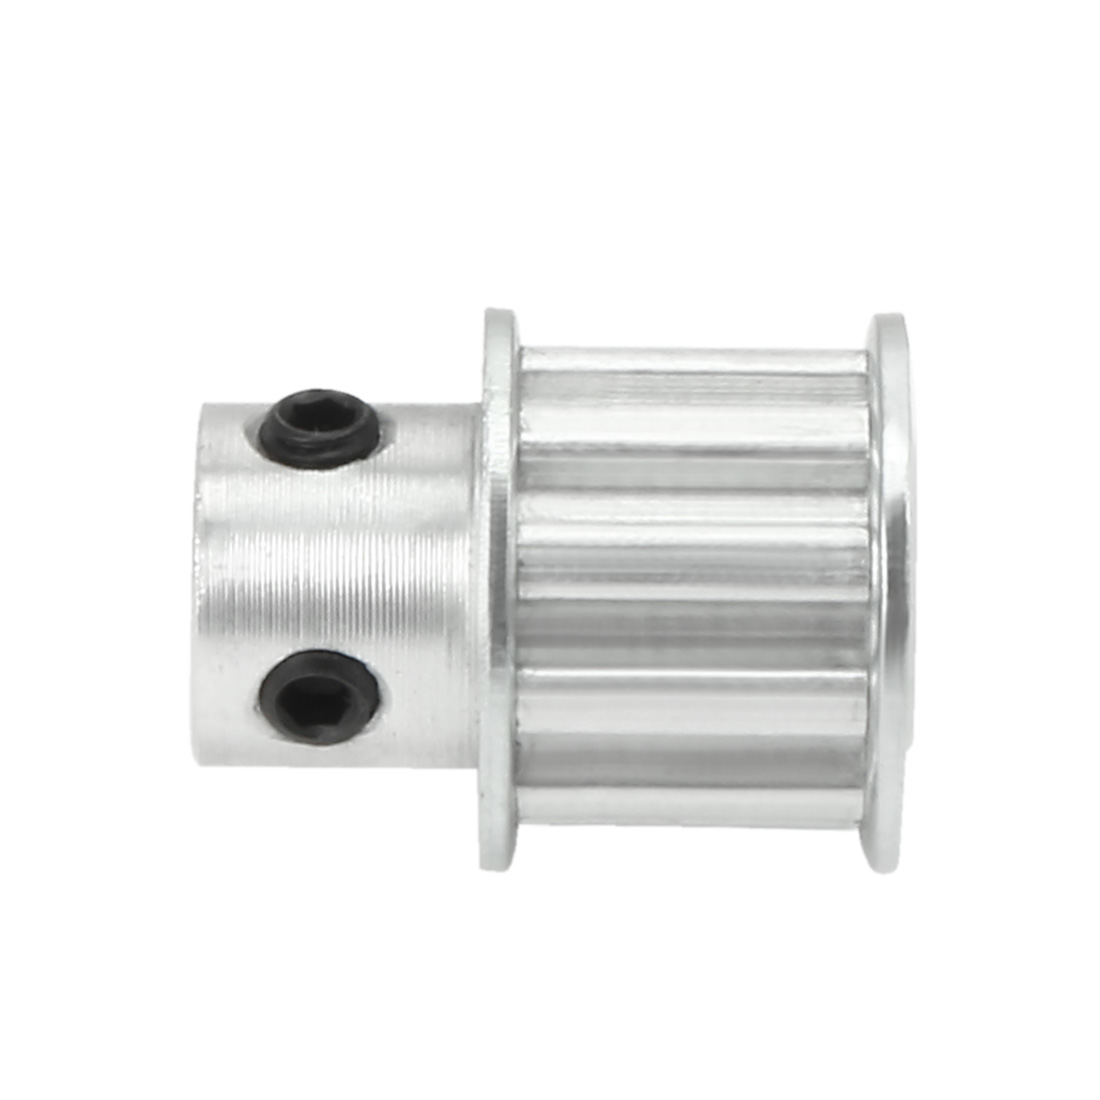 66 Coupling Outer Diameter:40 VXB Brand Japan MJC-40-RD 8mm to 11//16 inch Jaw-Type Flexible Coupling Coupling Bore 2 Diameter:11//16 inch Coupling Length